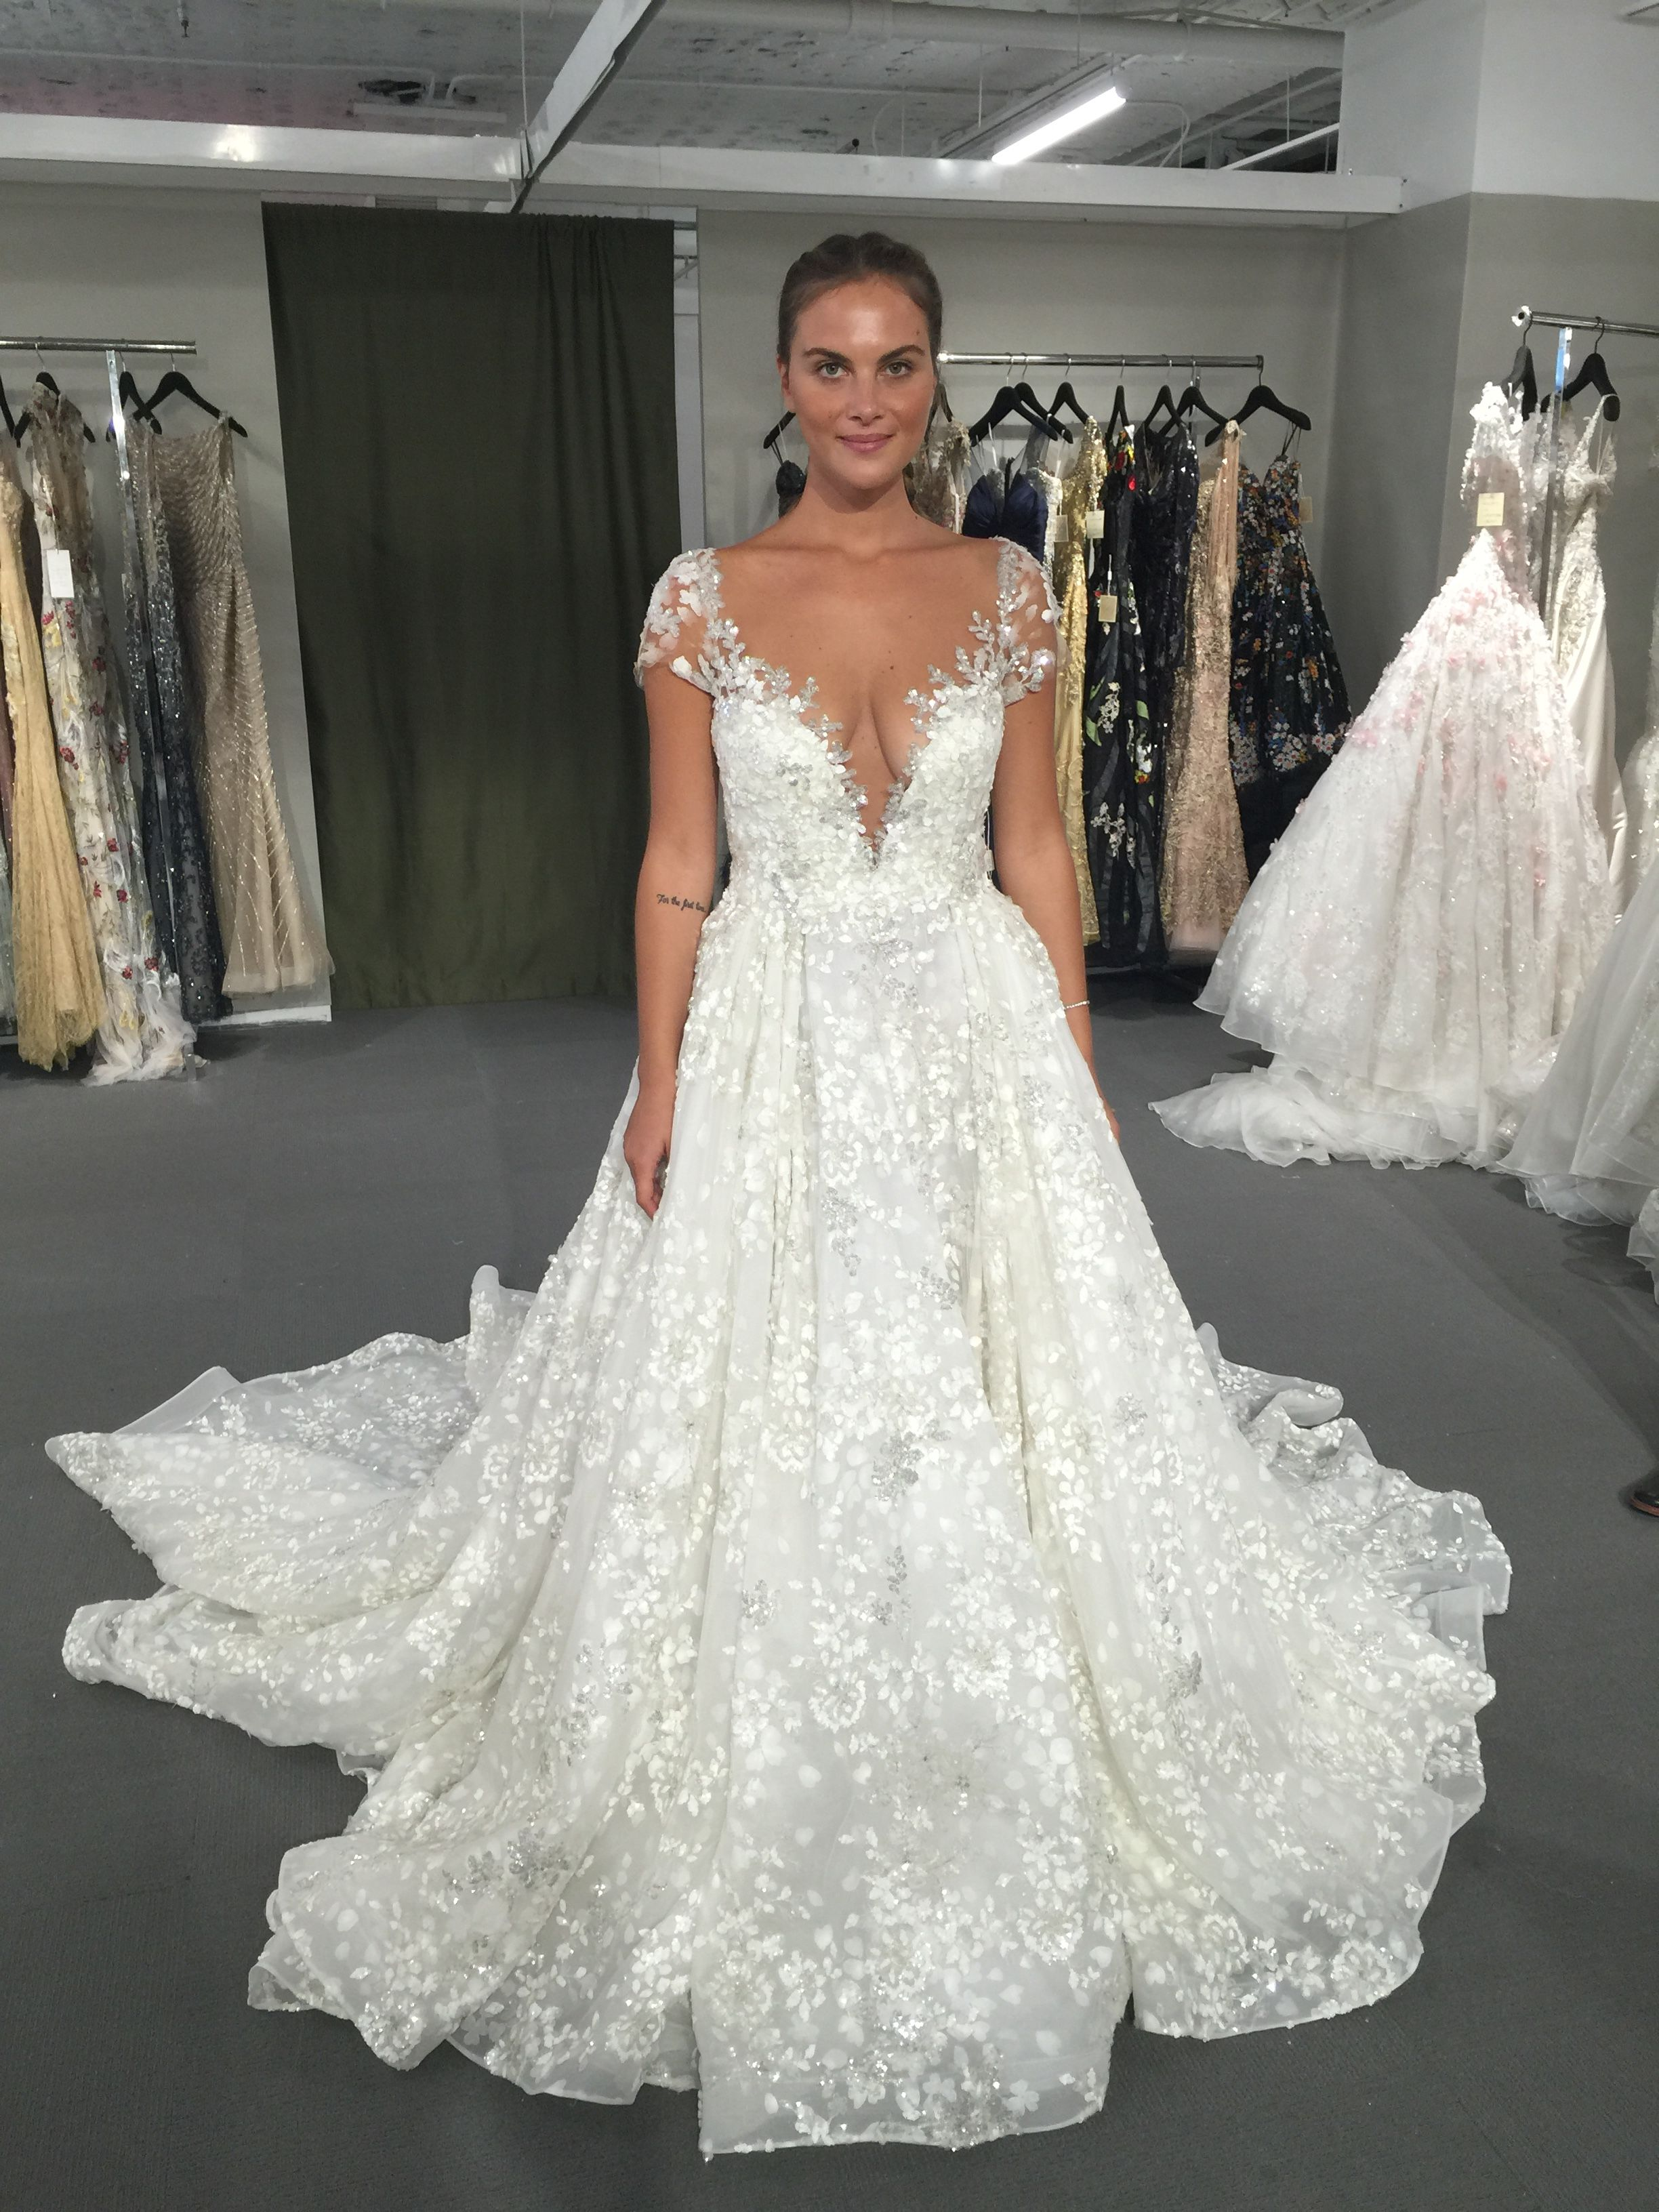 82b3dafe101f0f Ysa Makino FAll 2017 wedding dress available at Dimitra s Bridal Couture in  Chicago. www.DimitrasBrida...  sparkle  glamorous  bride  engagementring ...